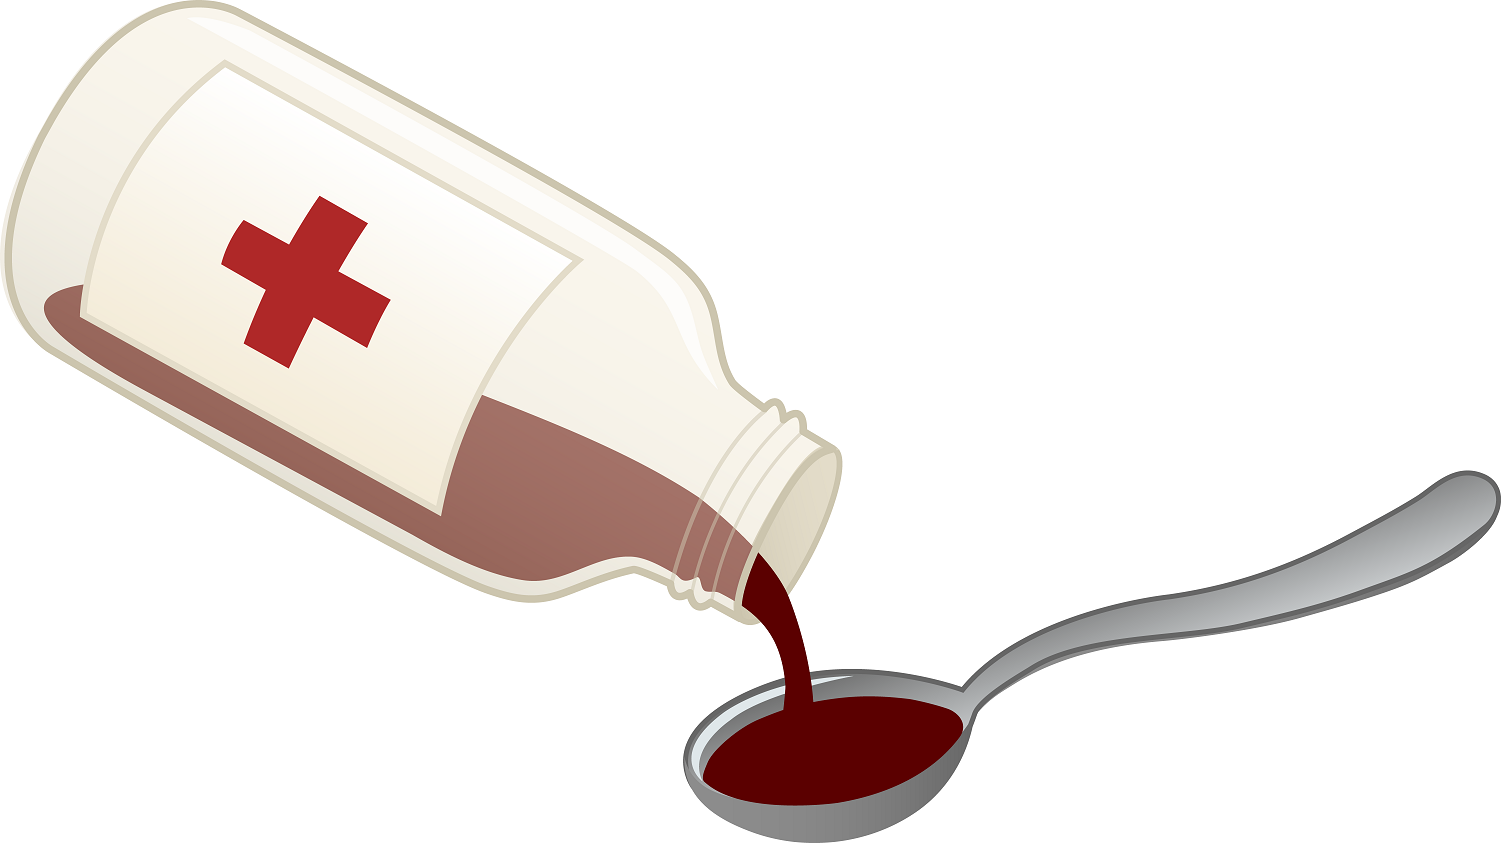 collection of liquid. Drugs clipart medication safety